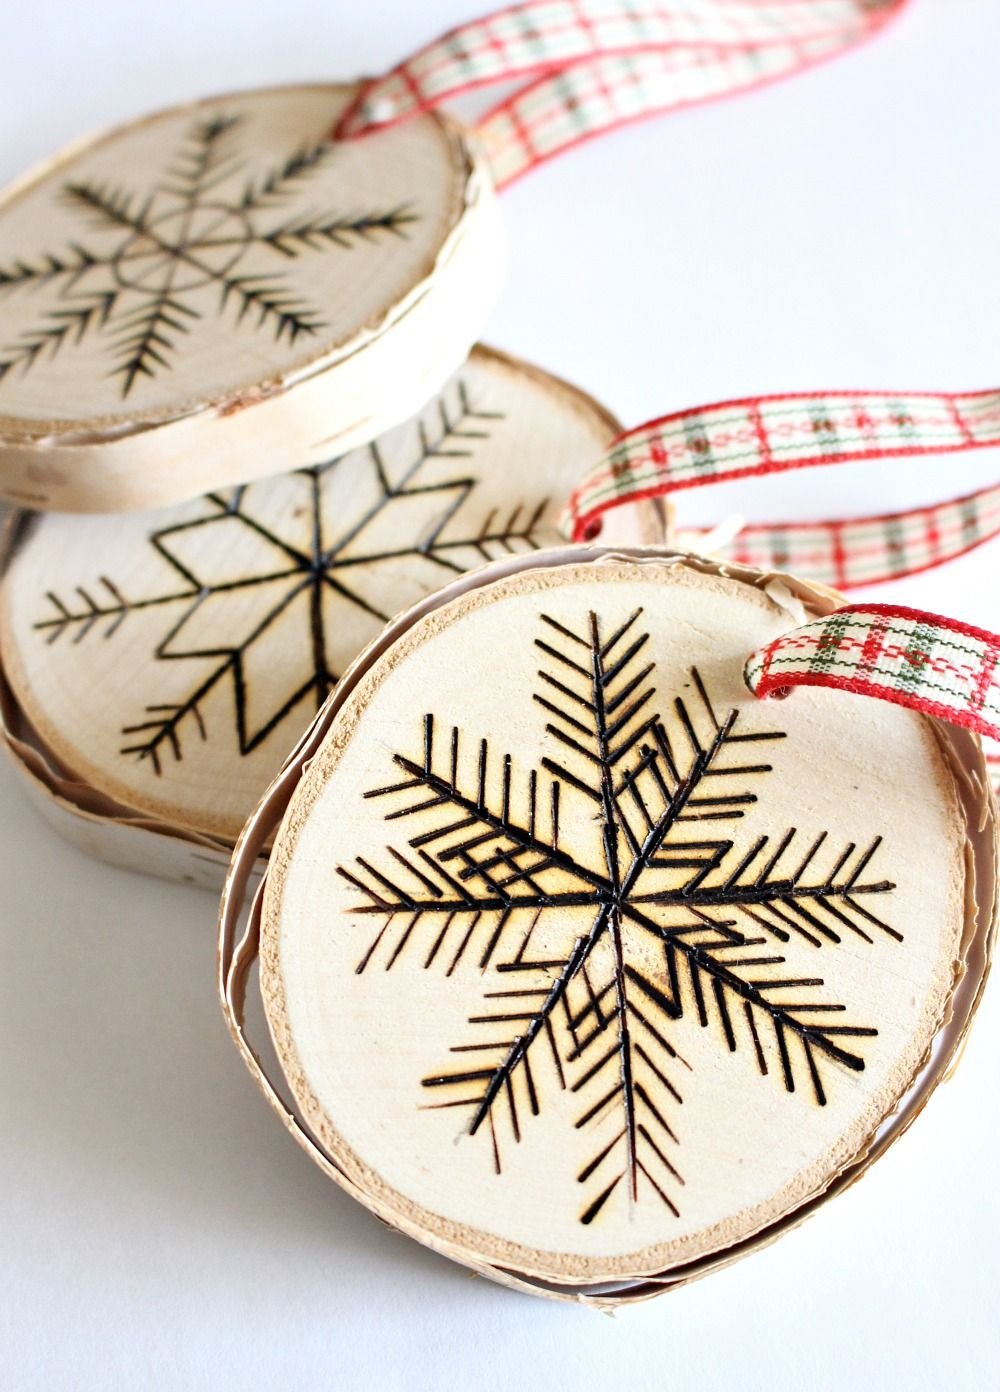 Birch wood slice ornament